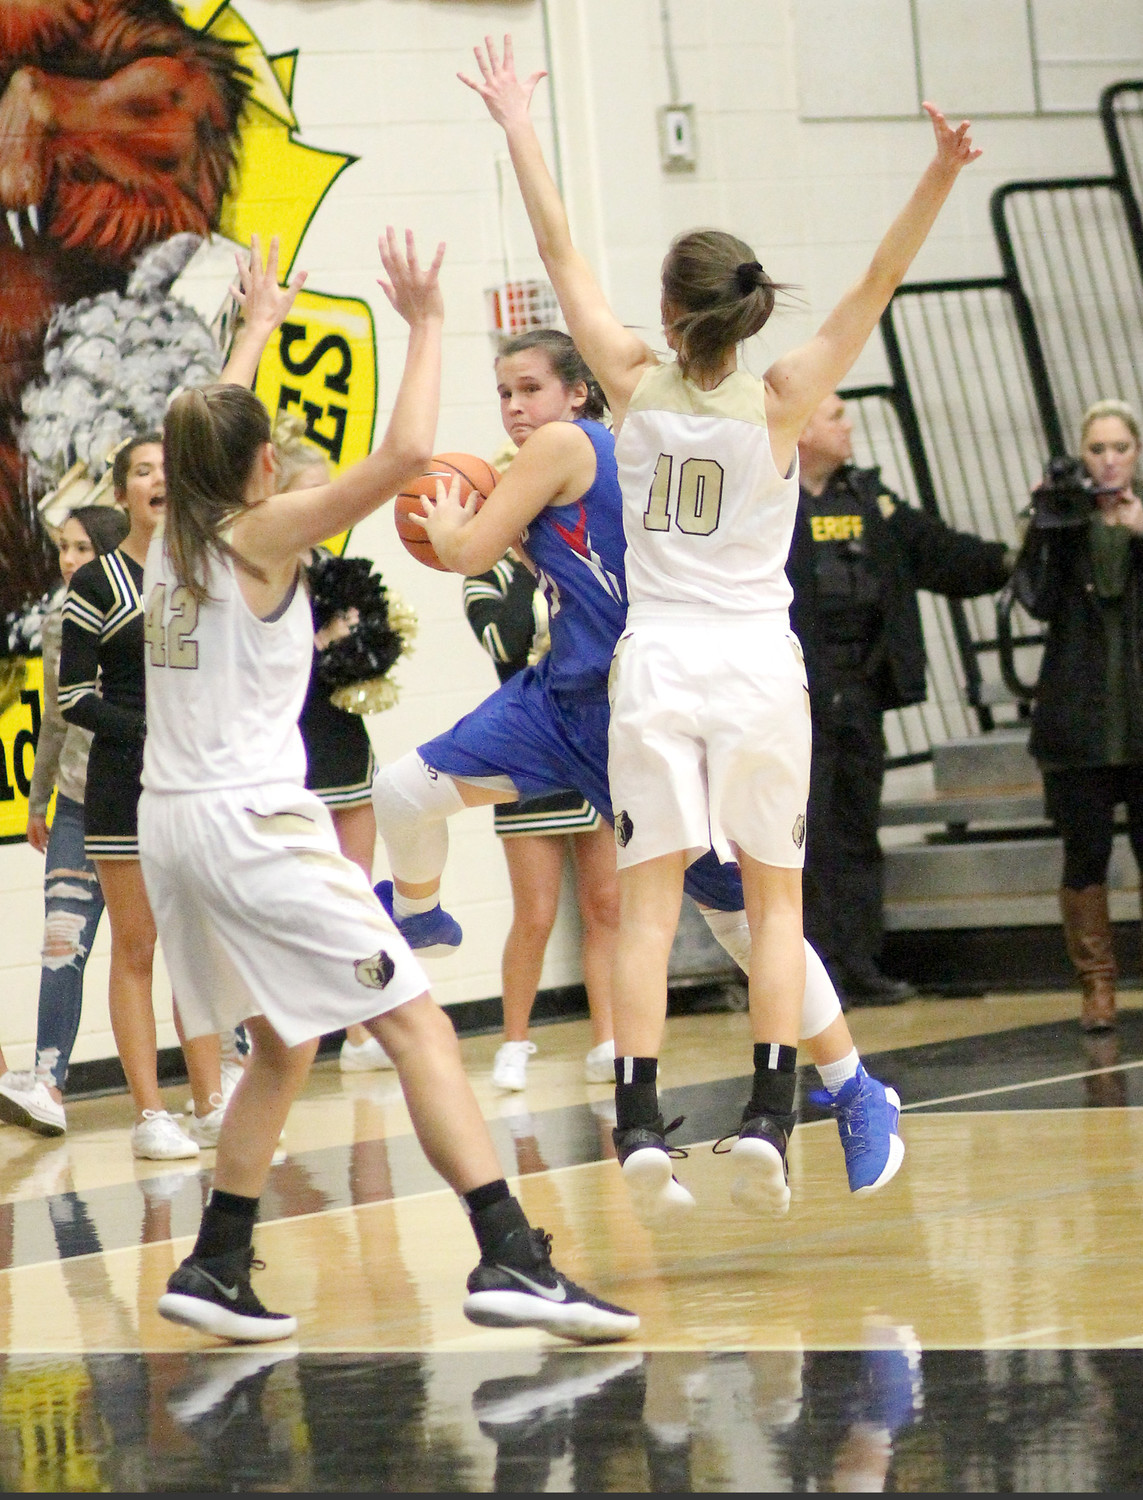 "CLEVELAND HIGH junior Madison Dasher, center, will be looking for openings, while Bradley Central defenders Anna Walker (42) and Anna Roberts (10) will be applying pressure during the District 5-AAA Tournament, which gets underway this evening at ""The Stable"" at Walker Valley."